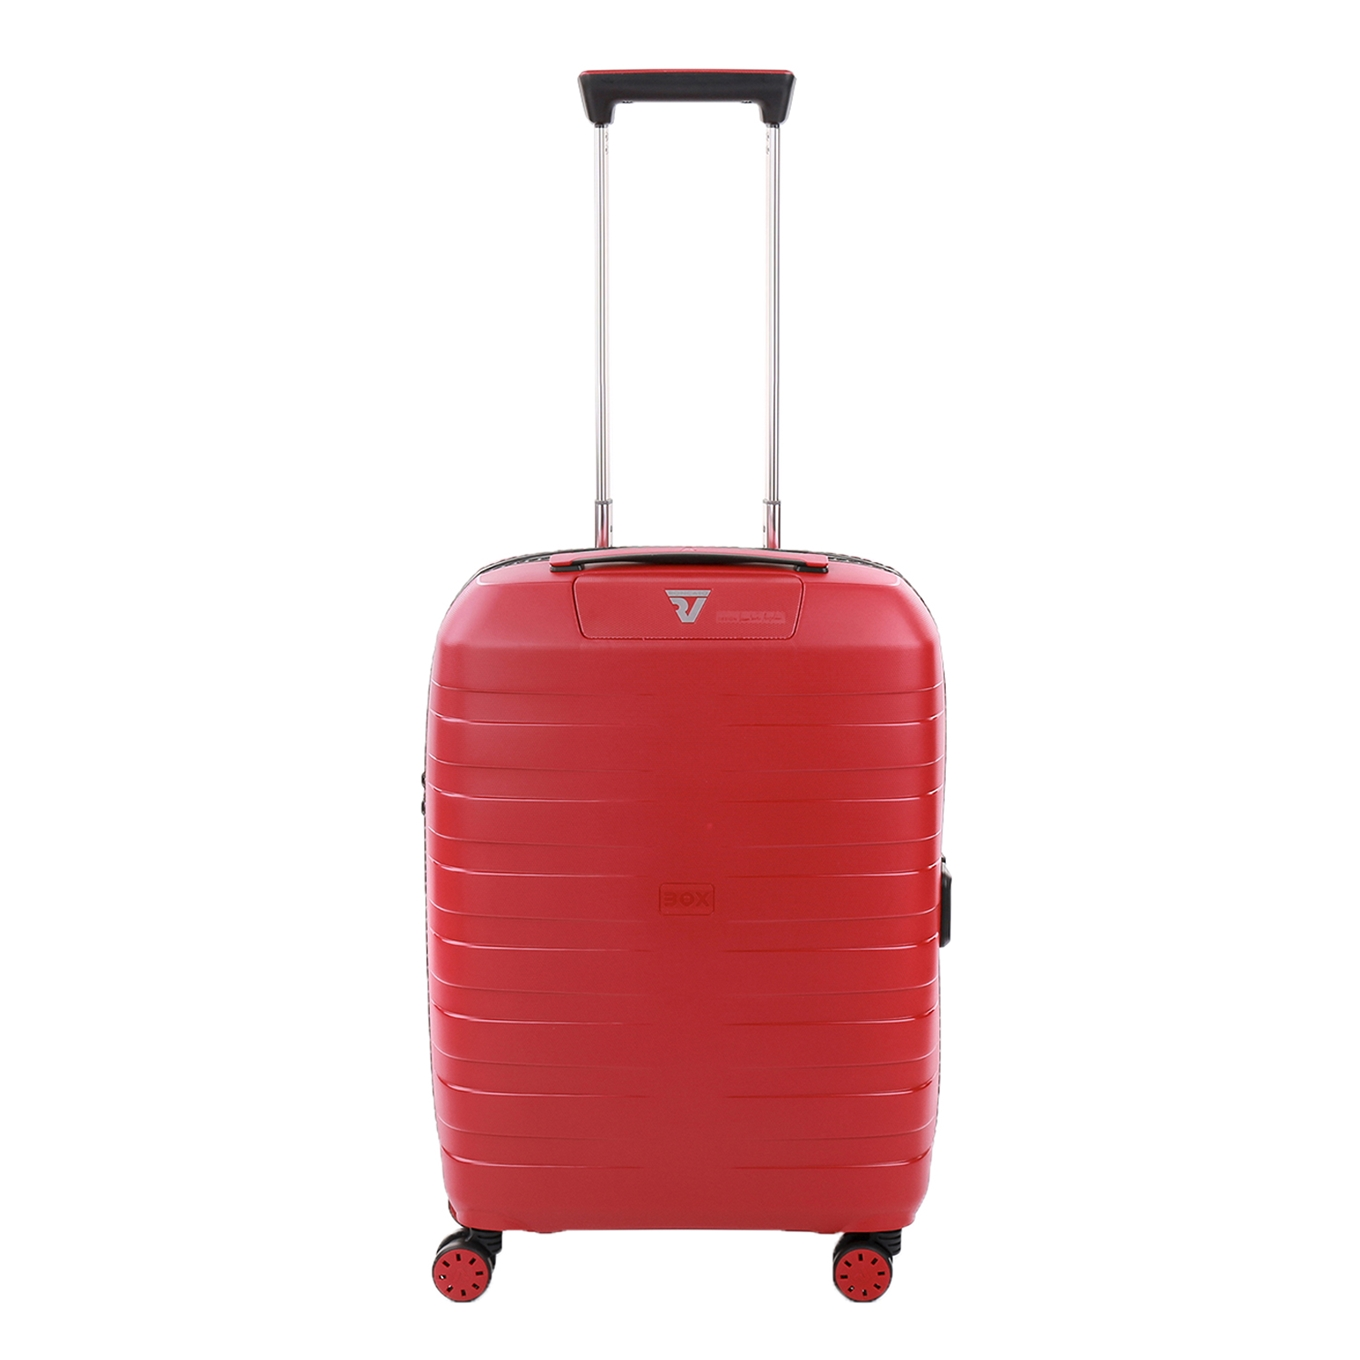 Roncato Box 4.0 4 Wiel Cabin Trolley 55/20-23 rosso Harde Koffer <br/></noscript><img class=